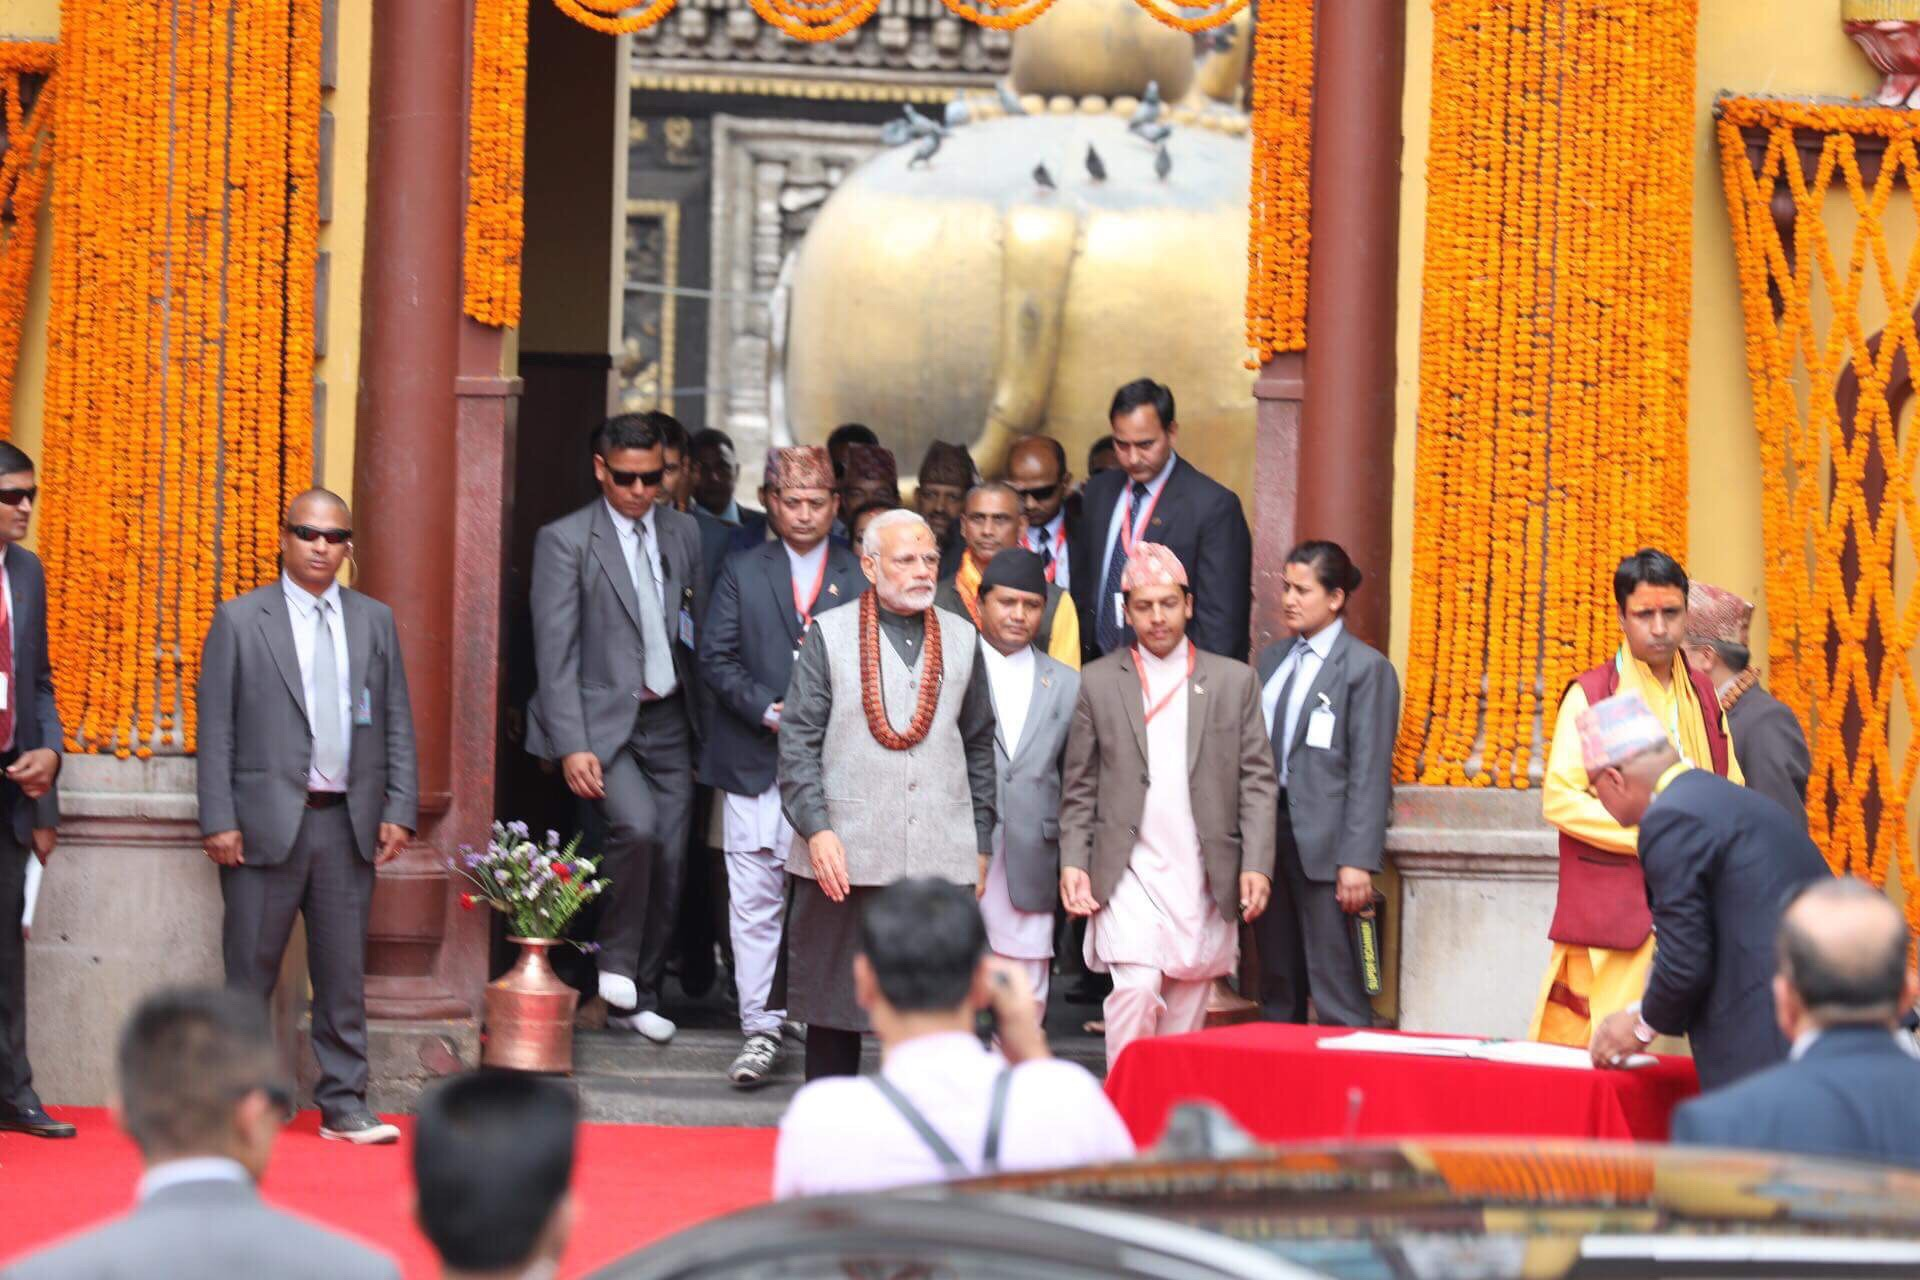 Indian Prime Minister Narendra Modi returning after performing special worship with the u2018Vedic Rudrabhisheku2019, at the main entrance of Pashupatinath temple, in Kathmandu, on Saturday, May 12, 2018. Photo: THT Online